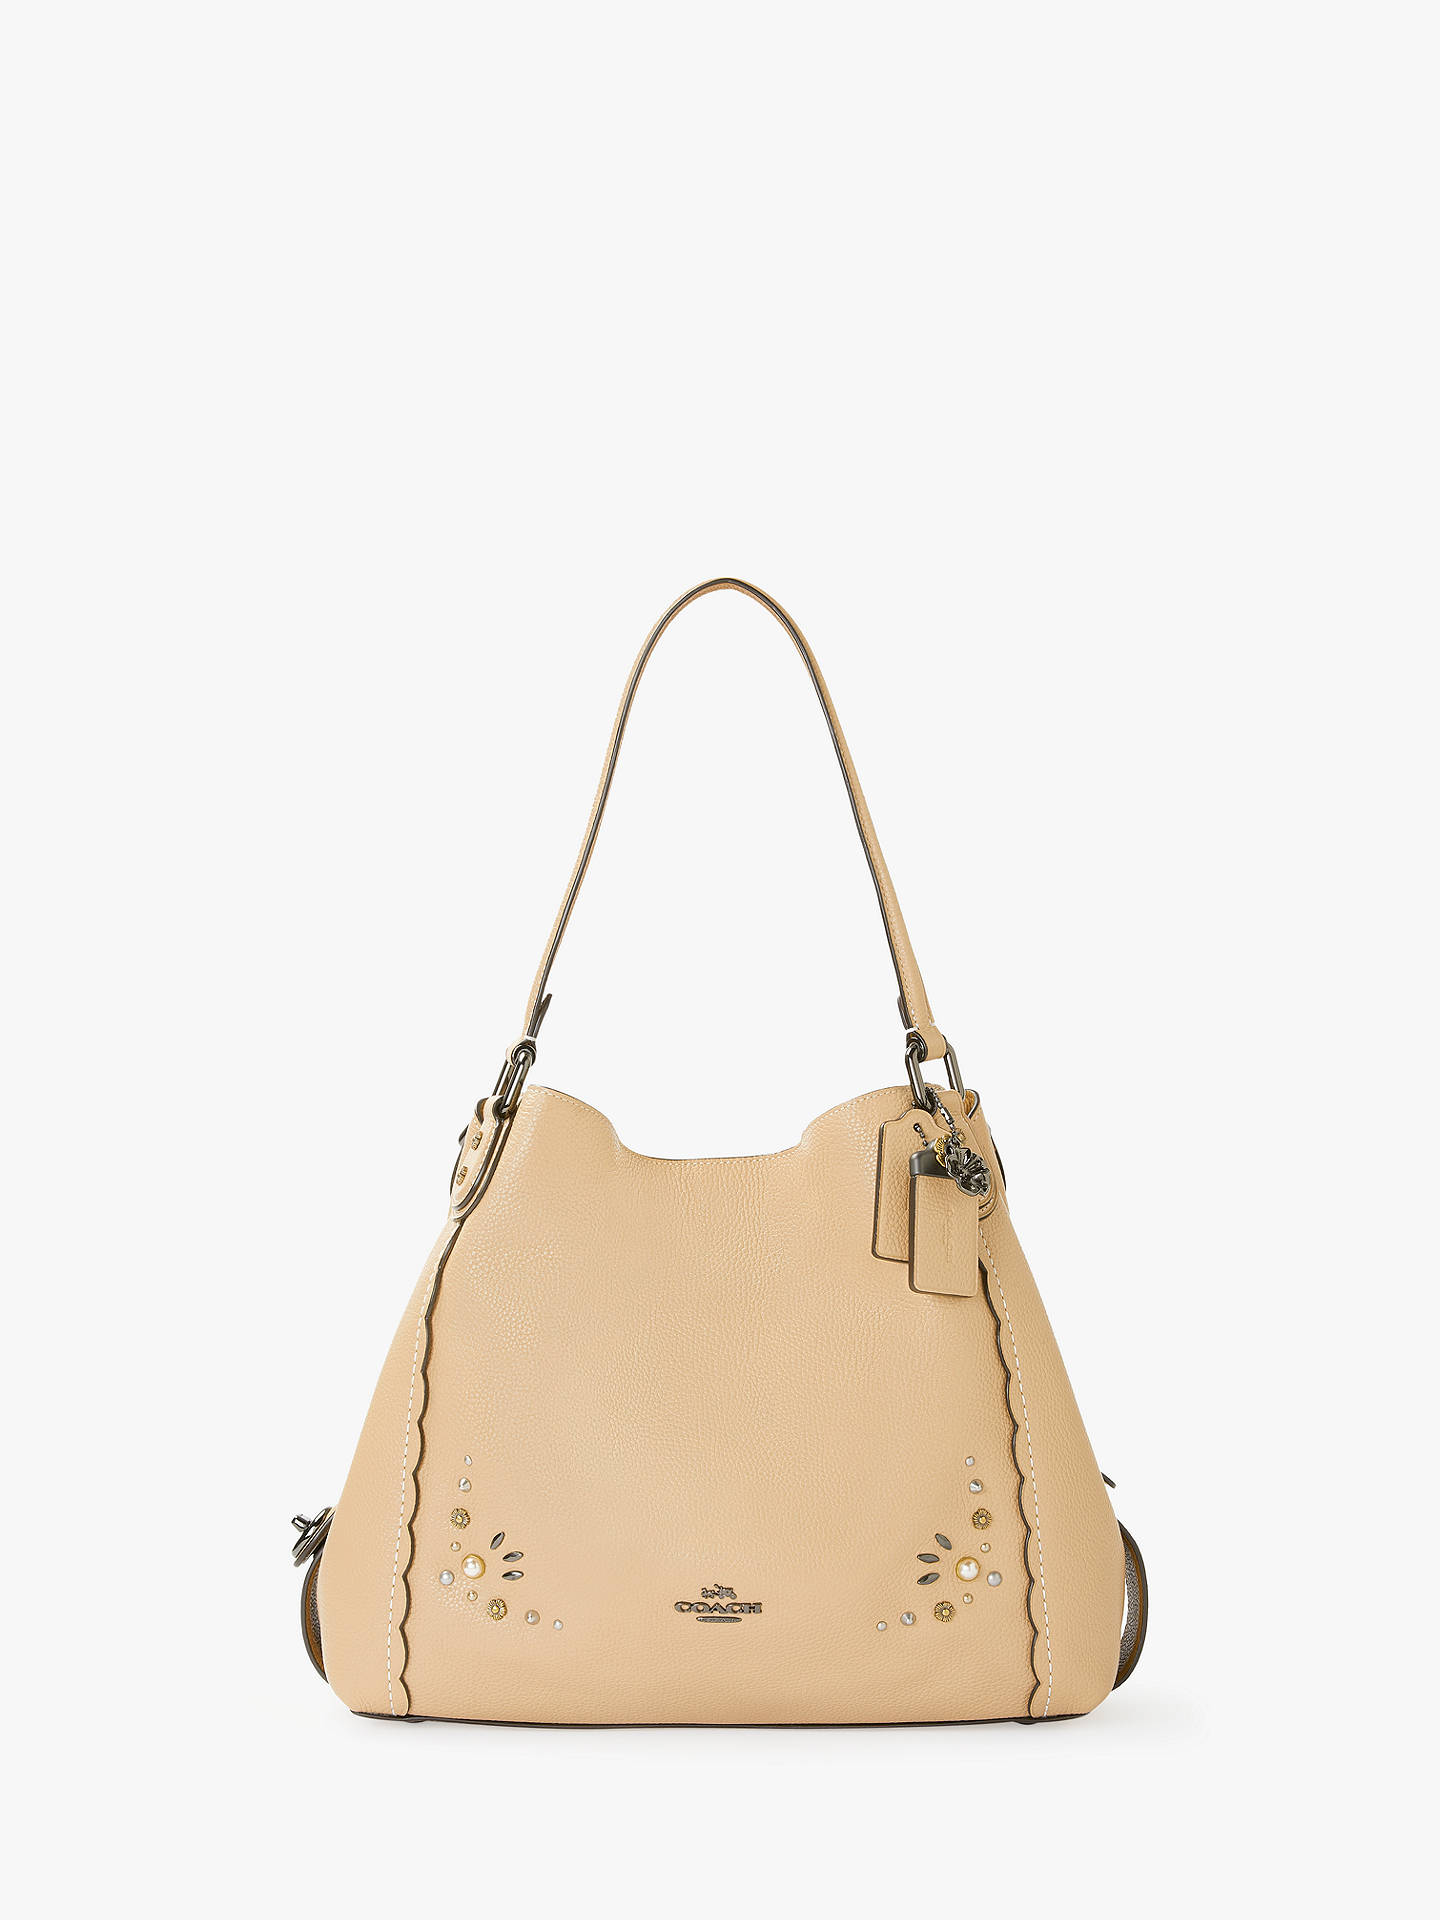 Coach Edie 31 Polished Pebble Leather Shoulder Bag at John Lewis ... 9fdc4e6cd3feb